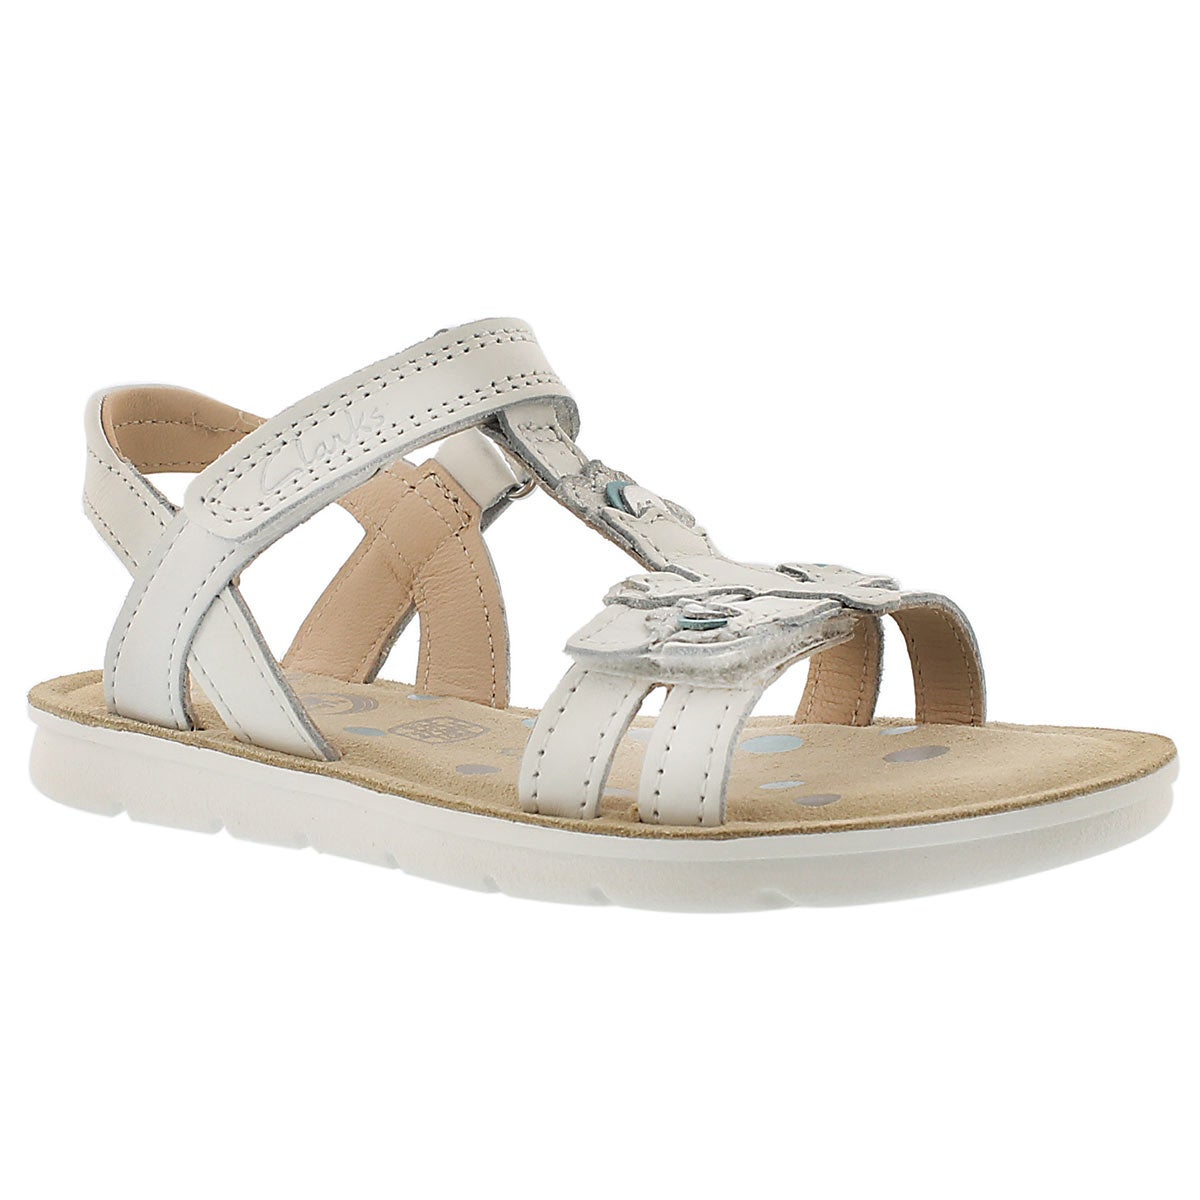 Girls' MIMO GRACIE white t-strap sandals